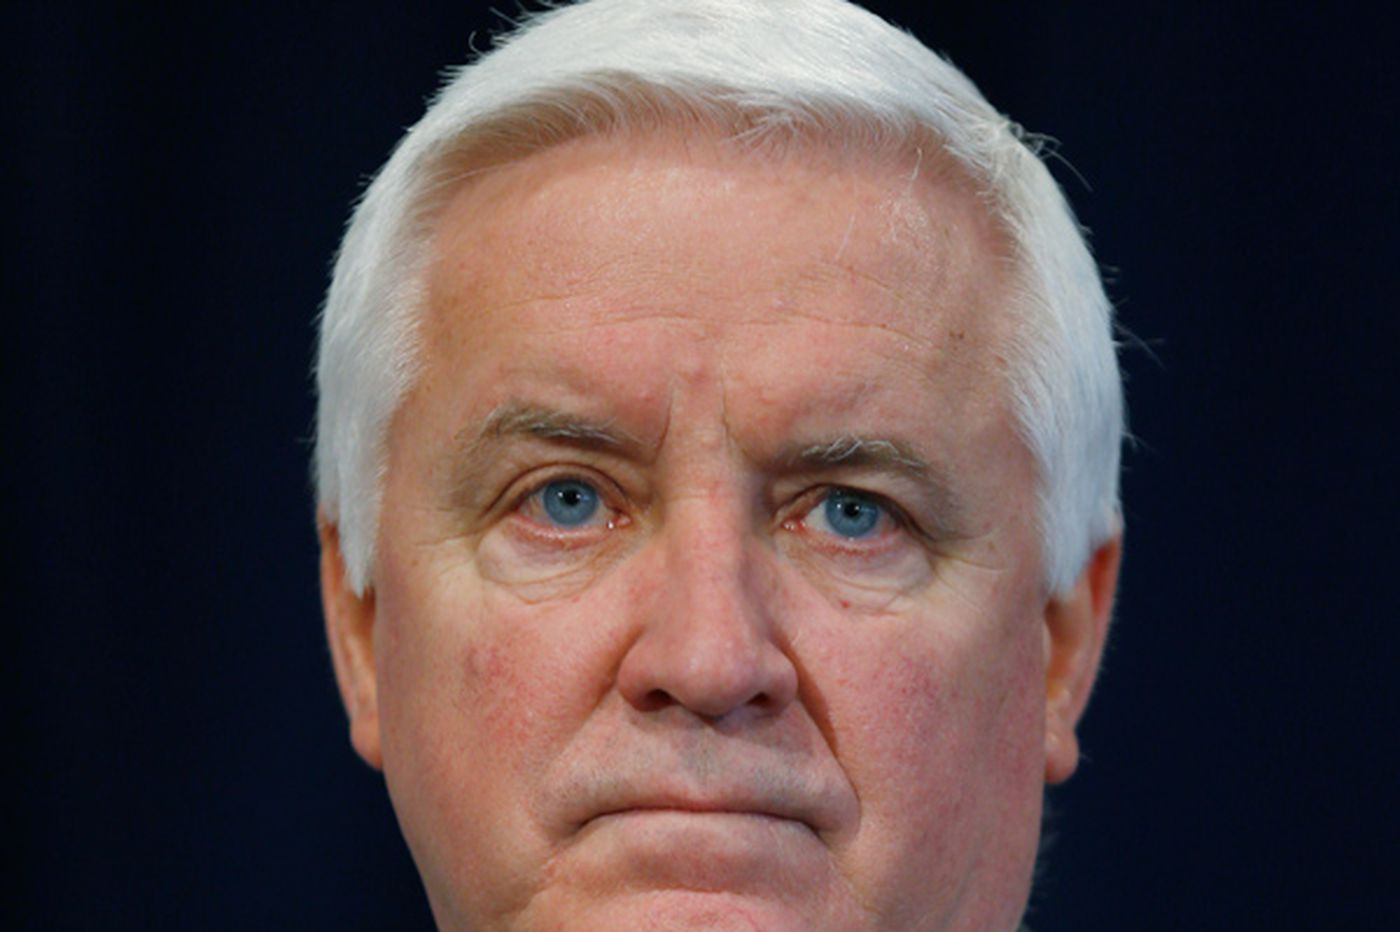 Corbett to sign bill banning abortion coverage in Obamacare exchanges